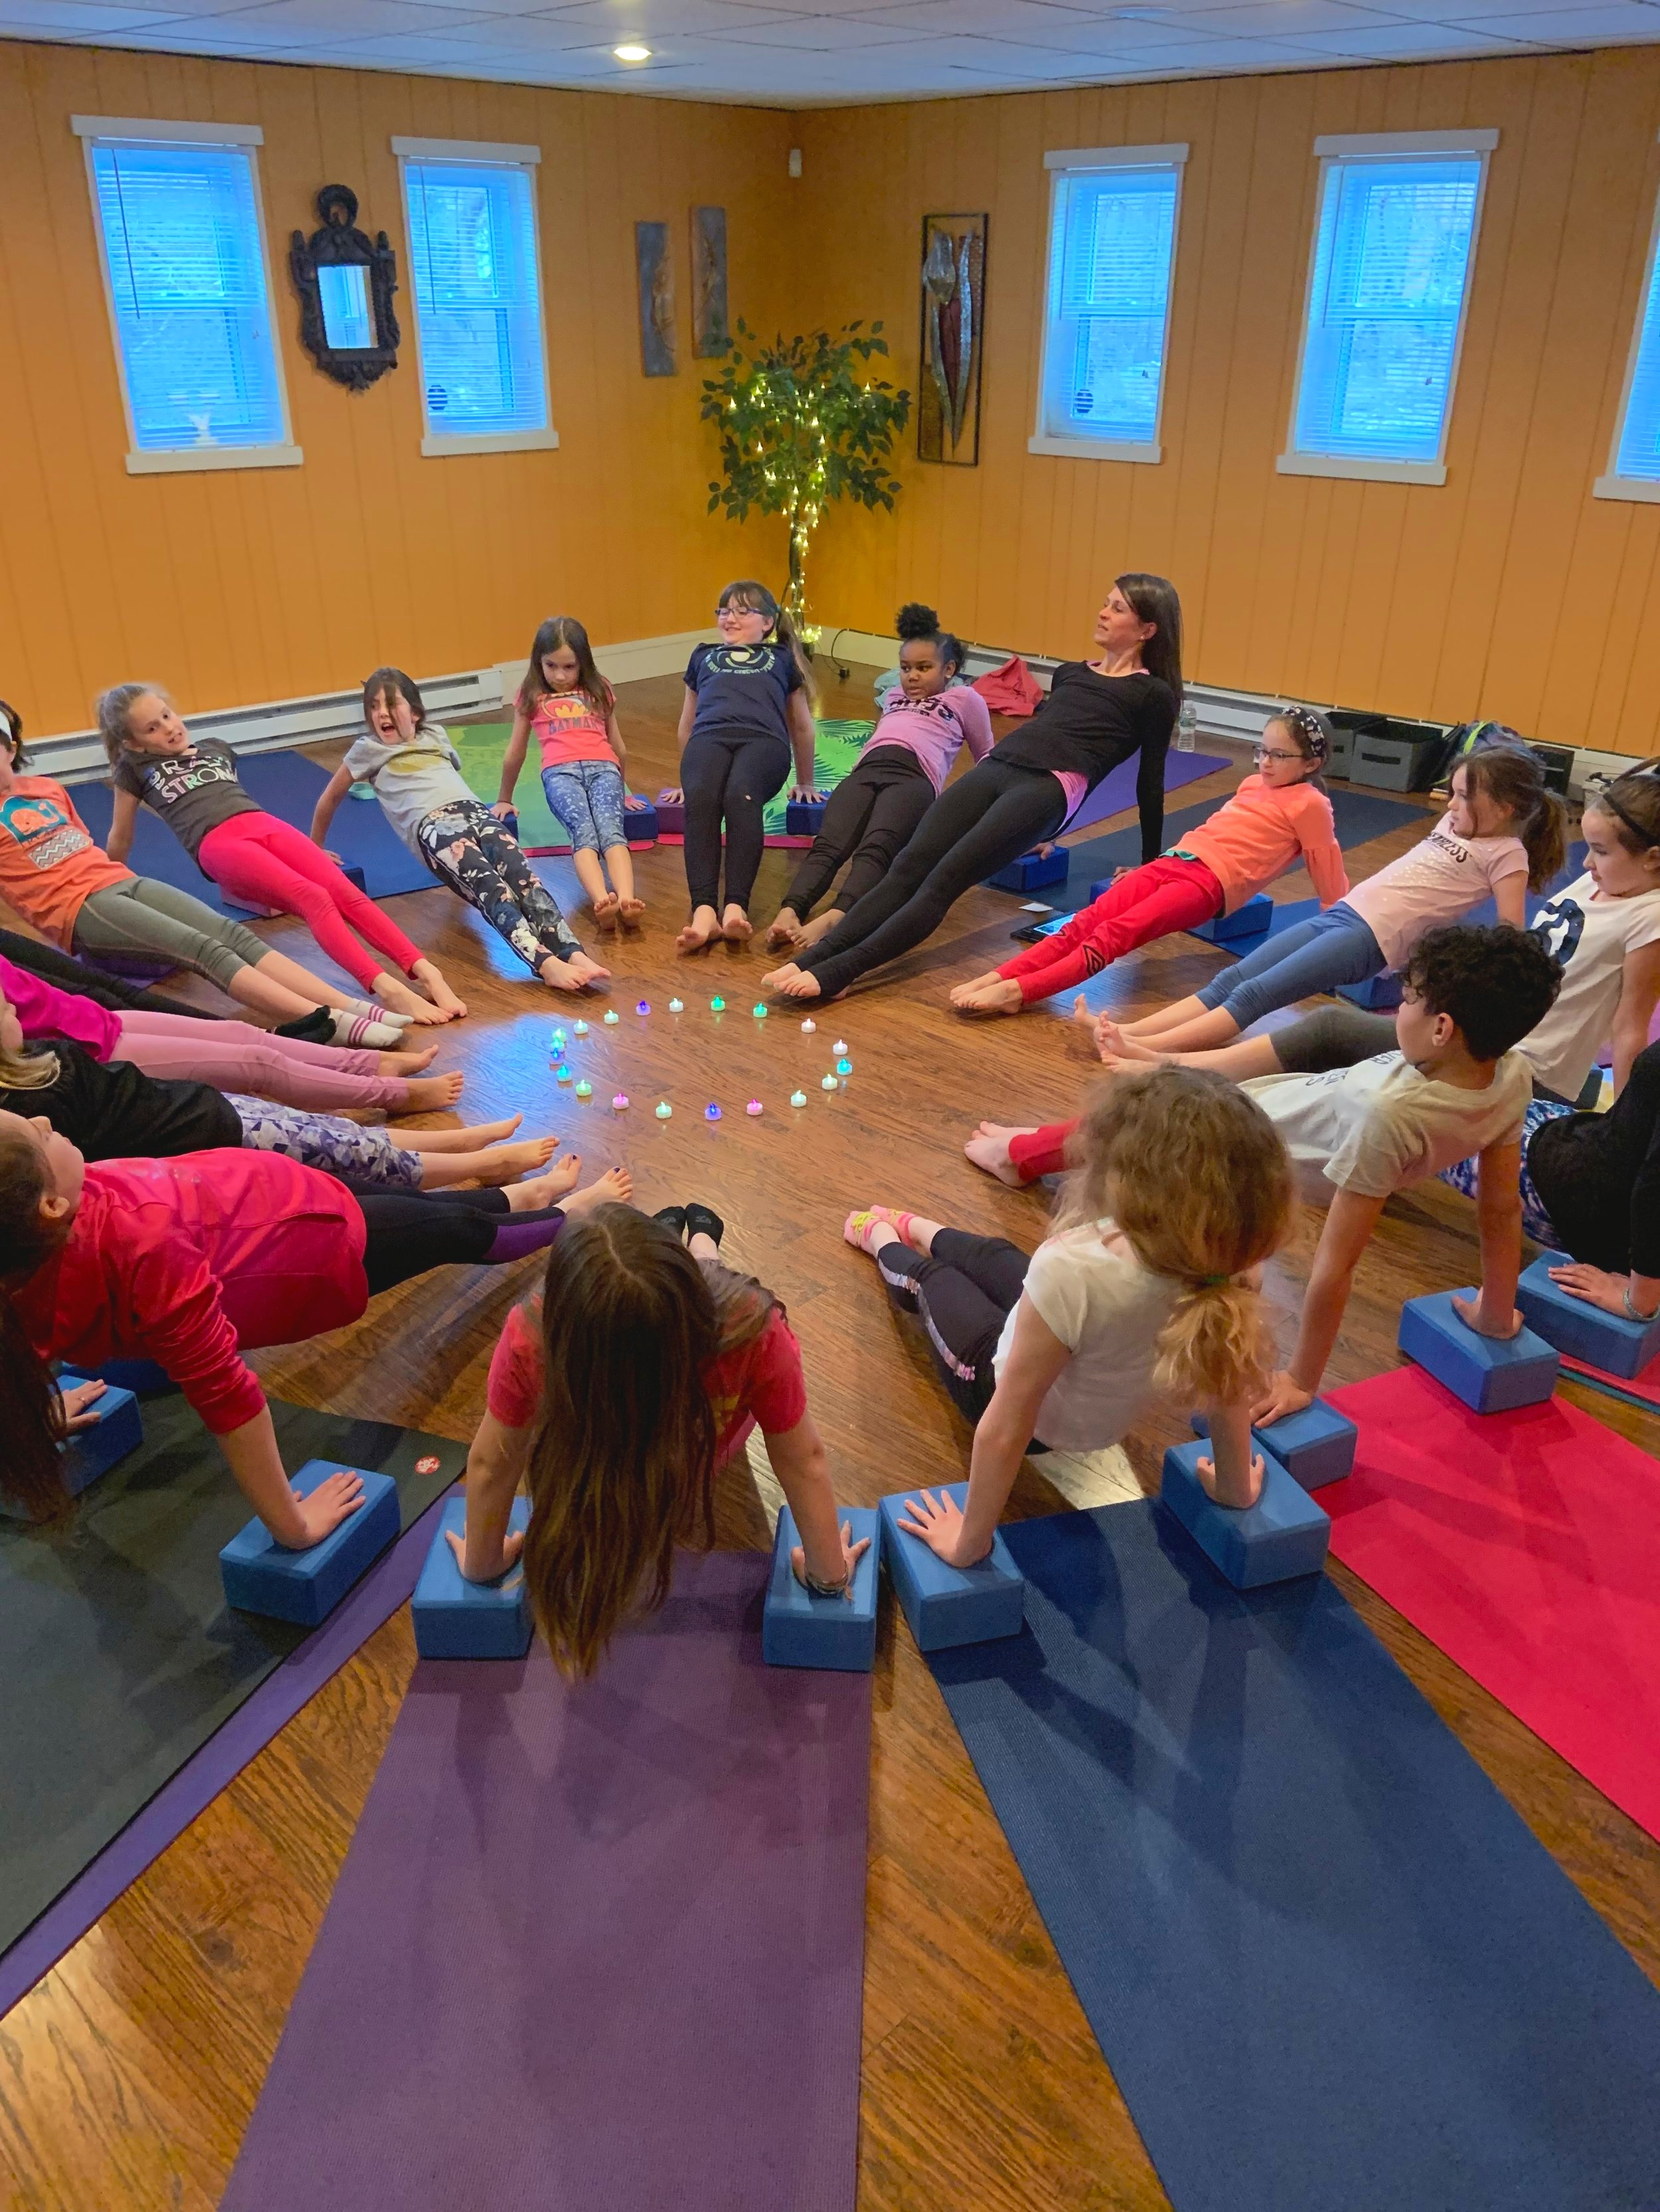 Tween Yoga + class . Incredibly strong and self-confident!